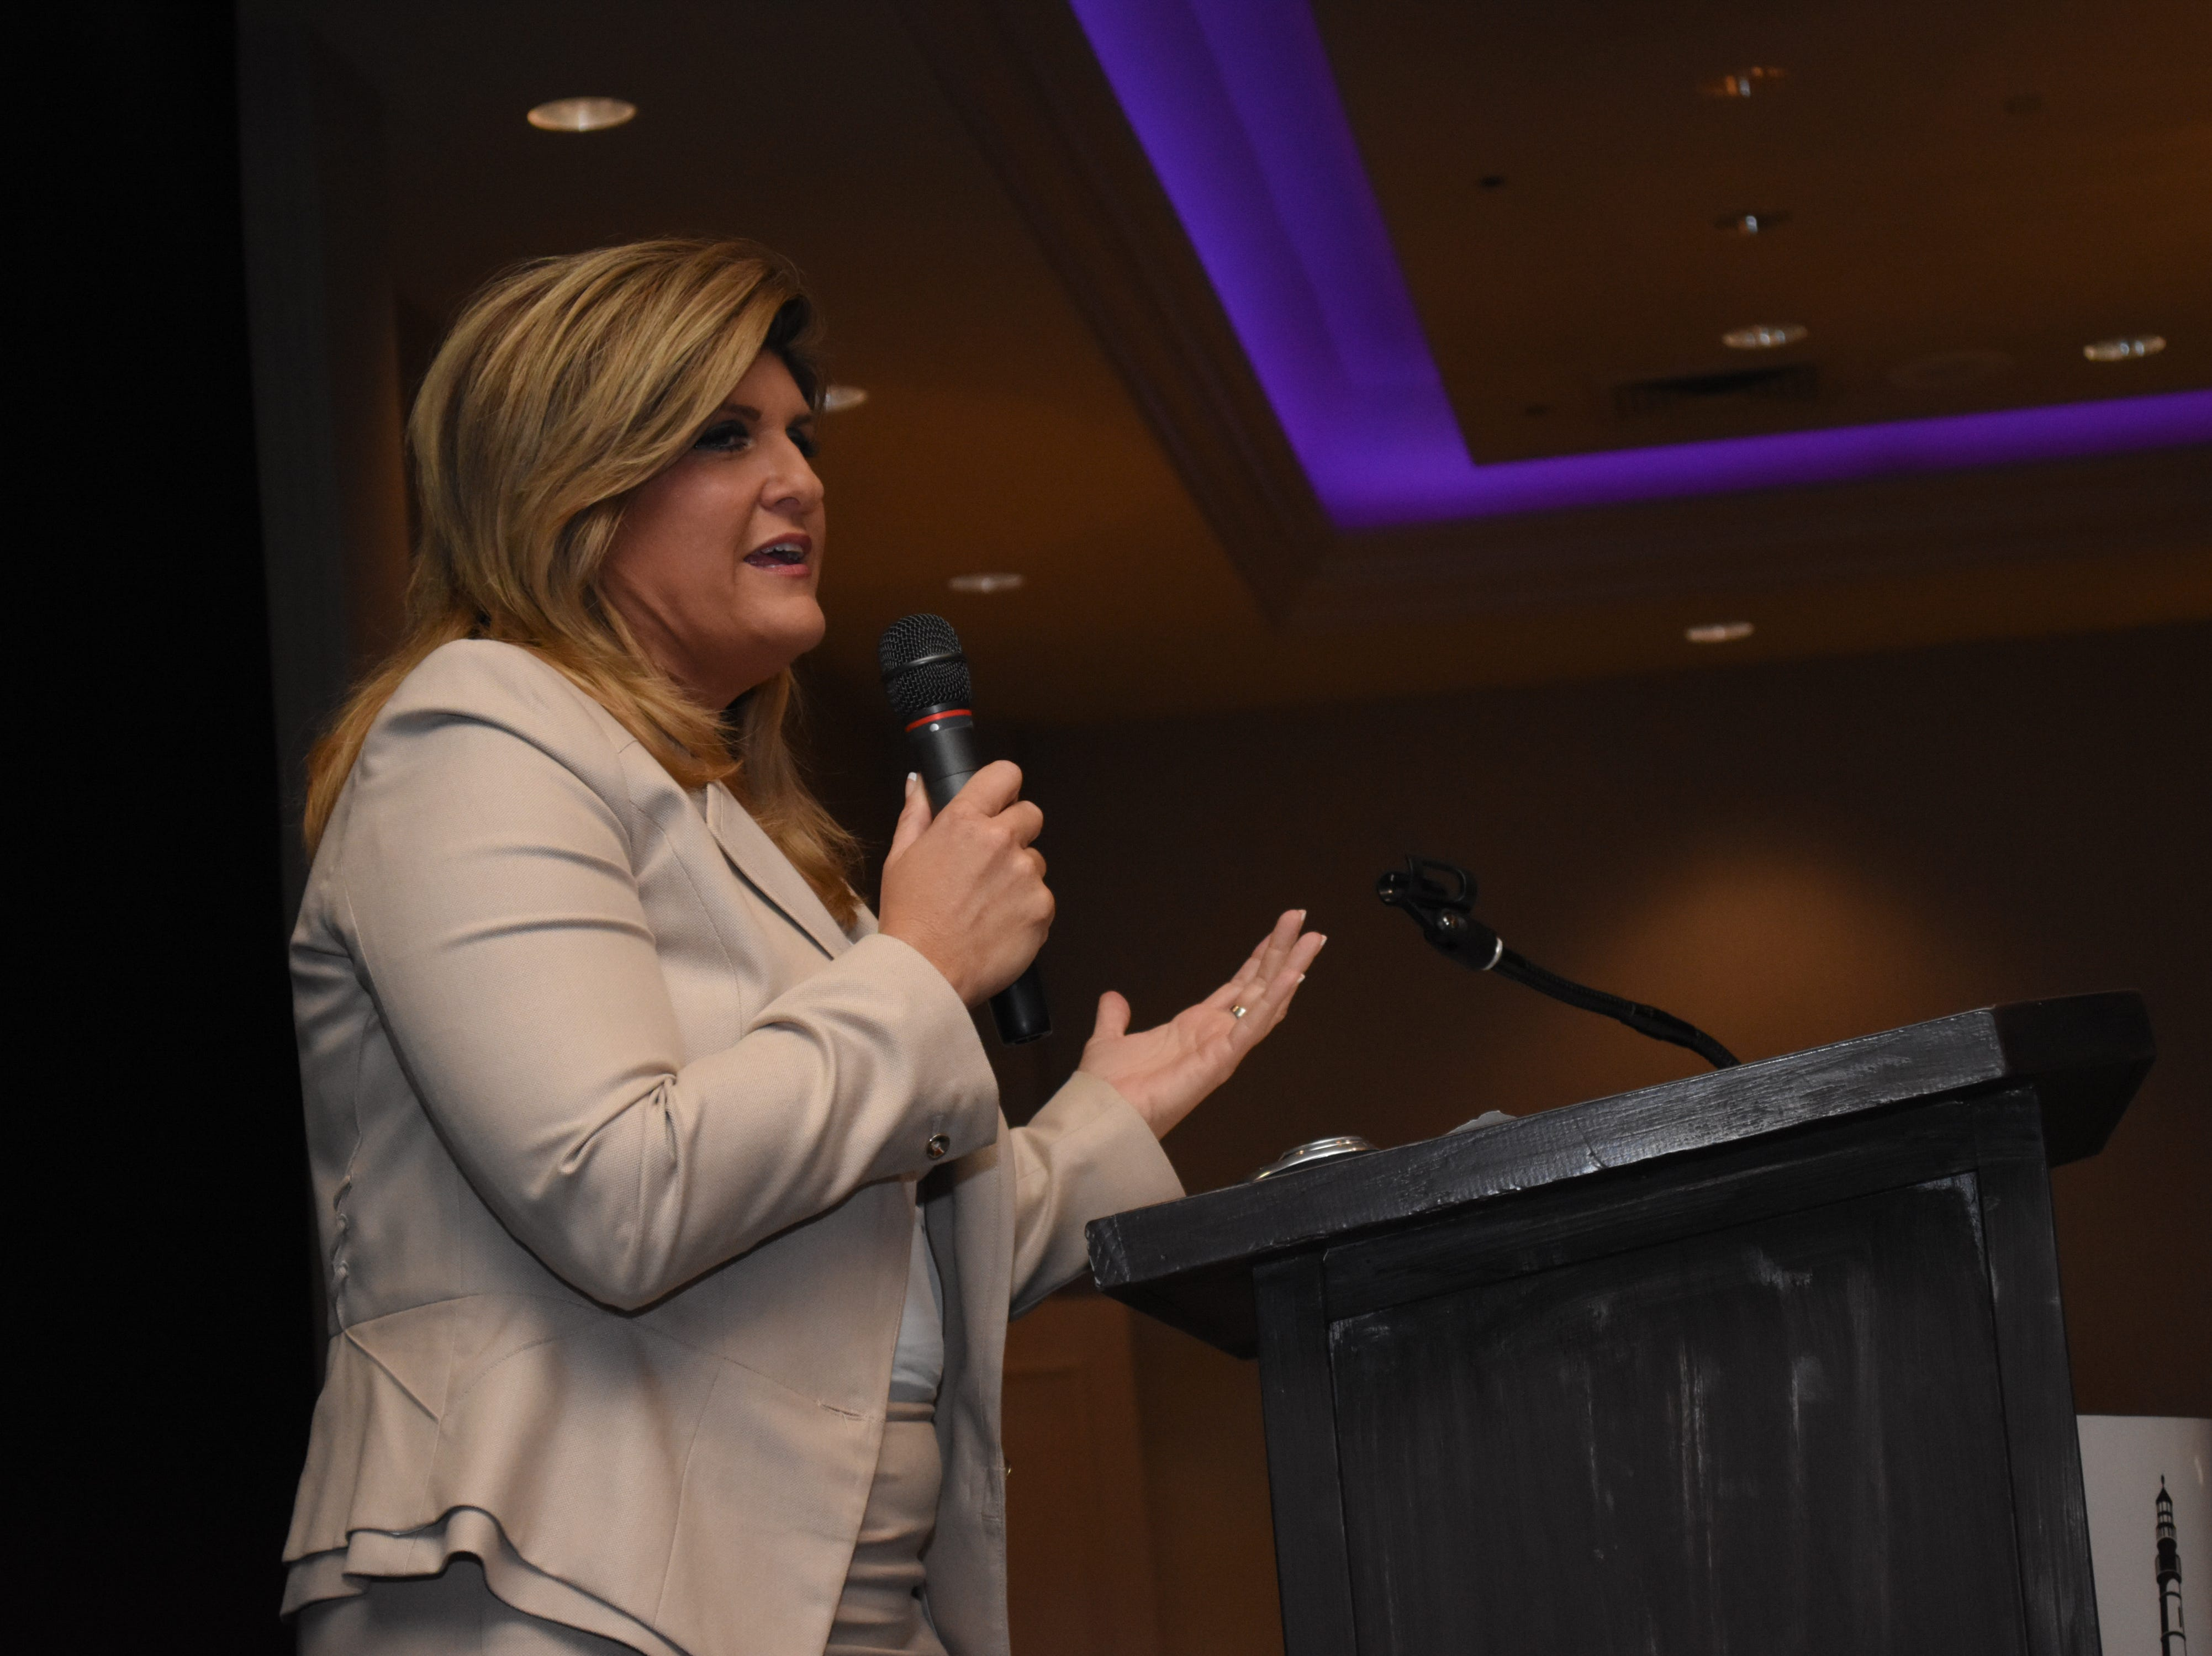 Former mayor of Cape Coral Marni Sawicki speaks about domestic violence to the crowd.